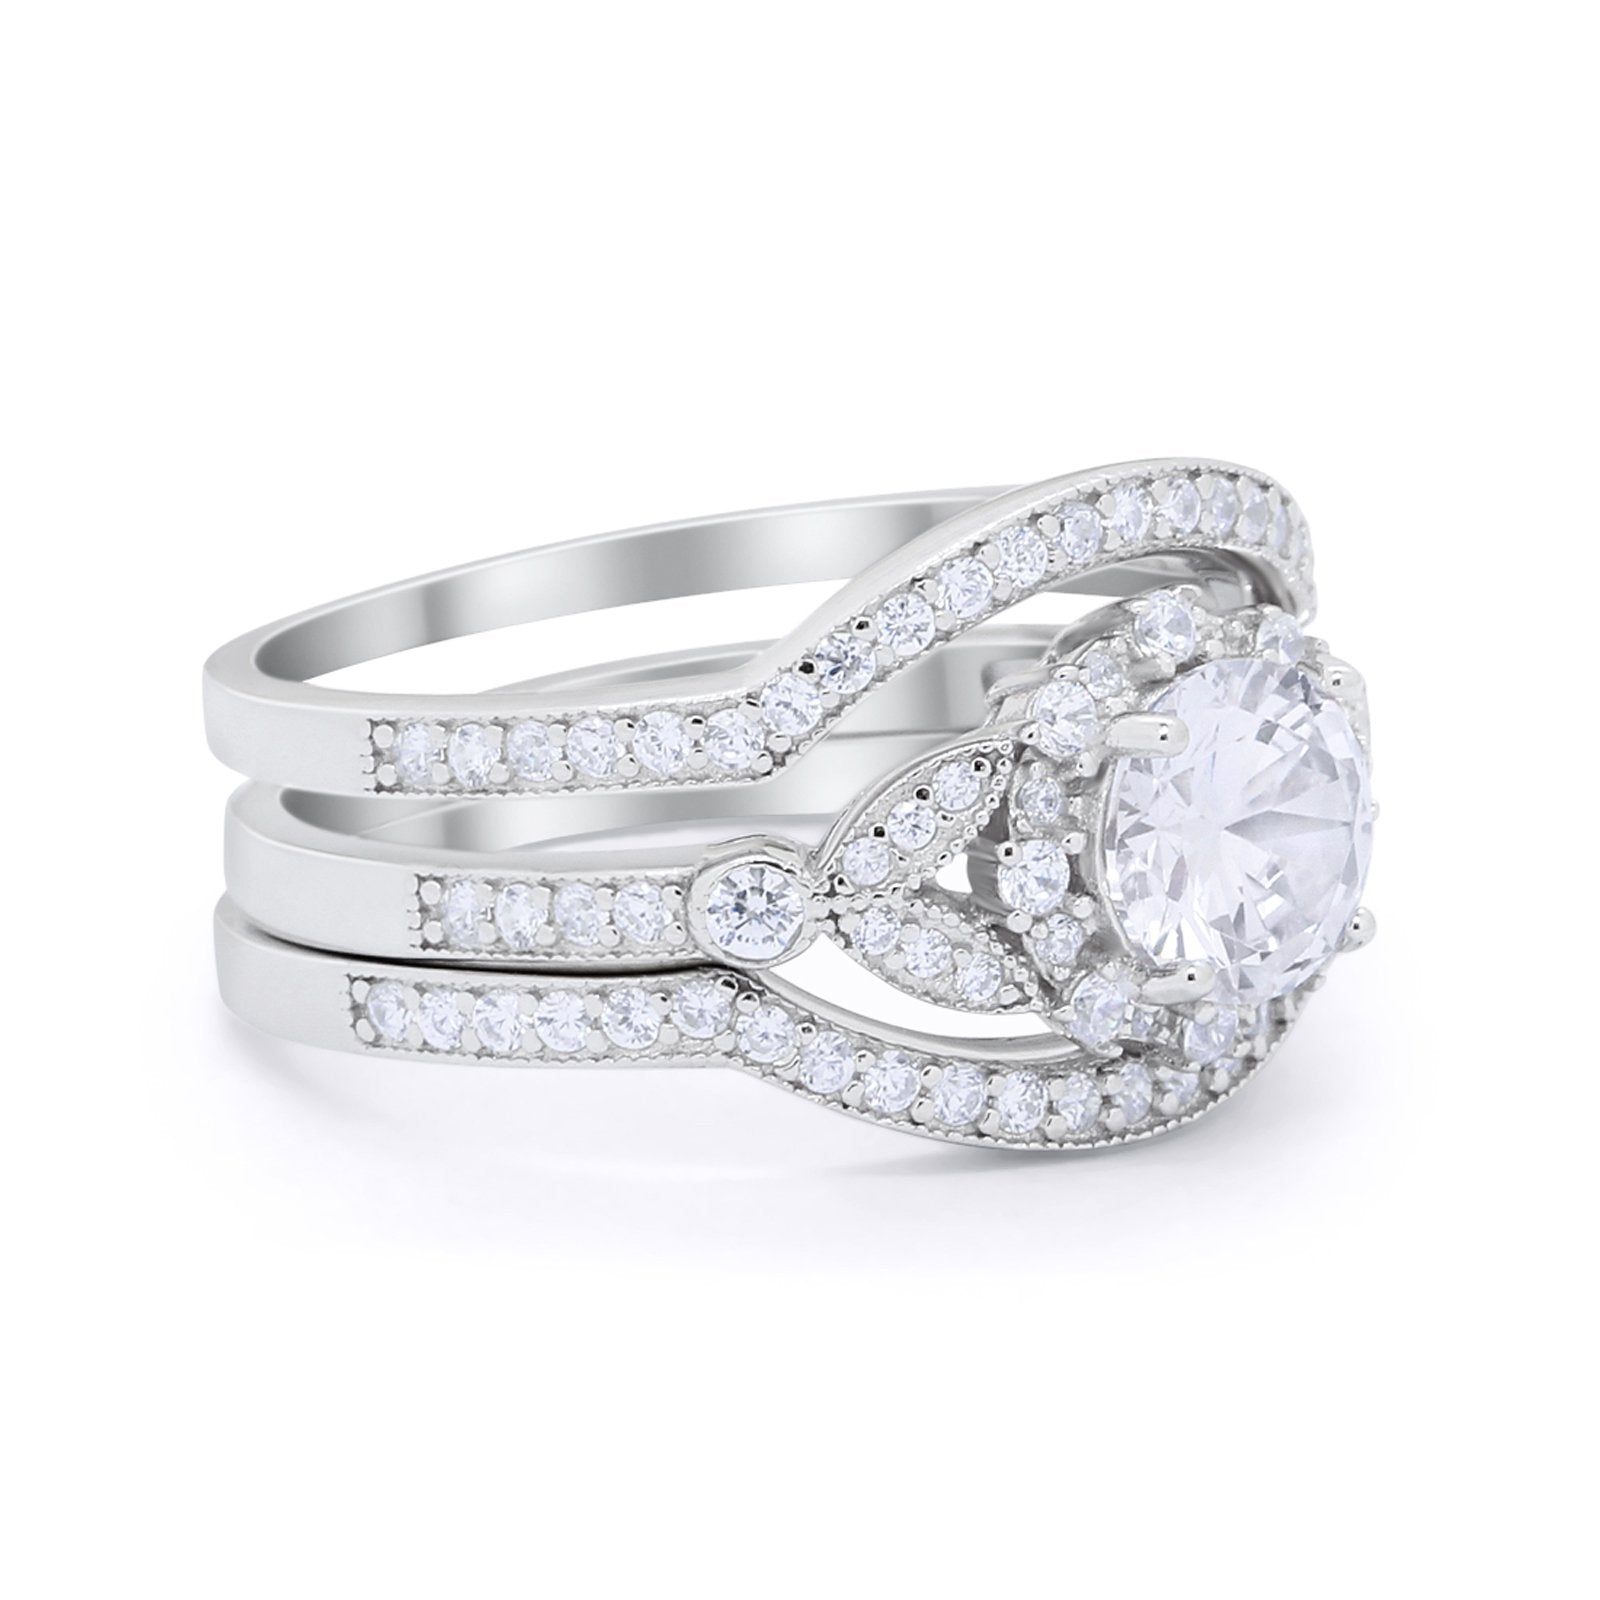 Art Deco Wedding Ring Band Bridal Set Three Piece Round Cubic Zirconia 925 Sterling Silver